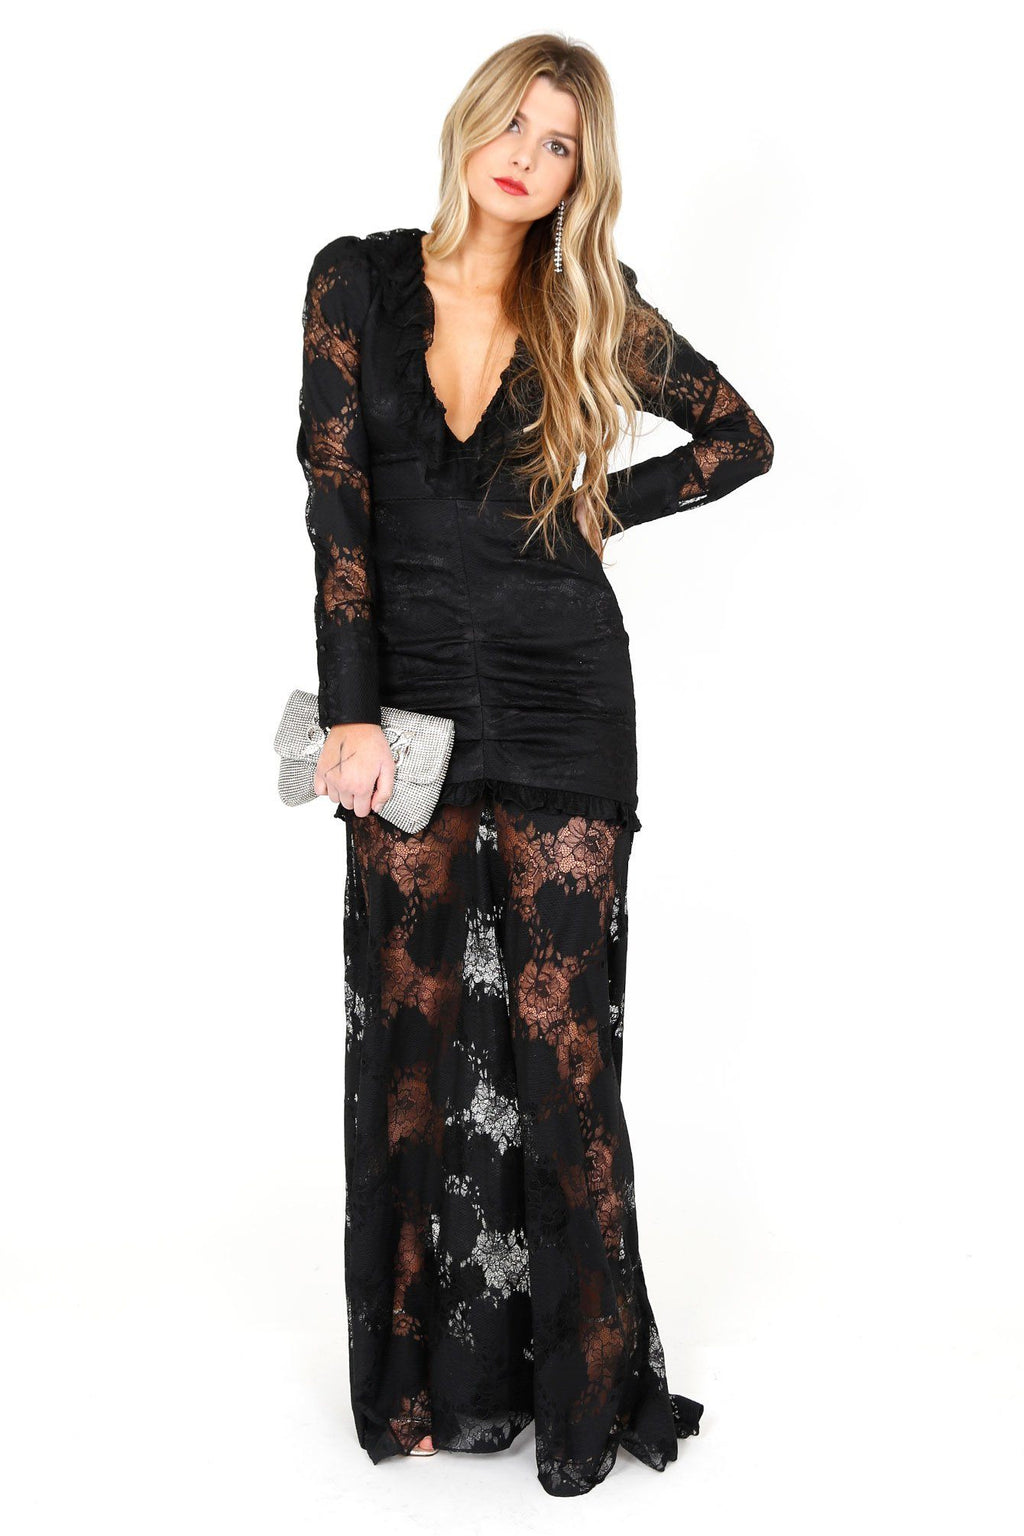 ALEXIS | Lucasta Long Lace Dress - Black